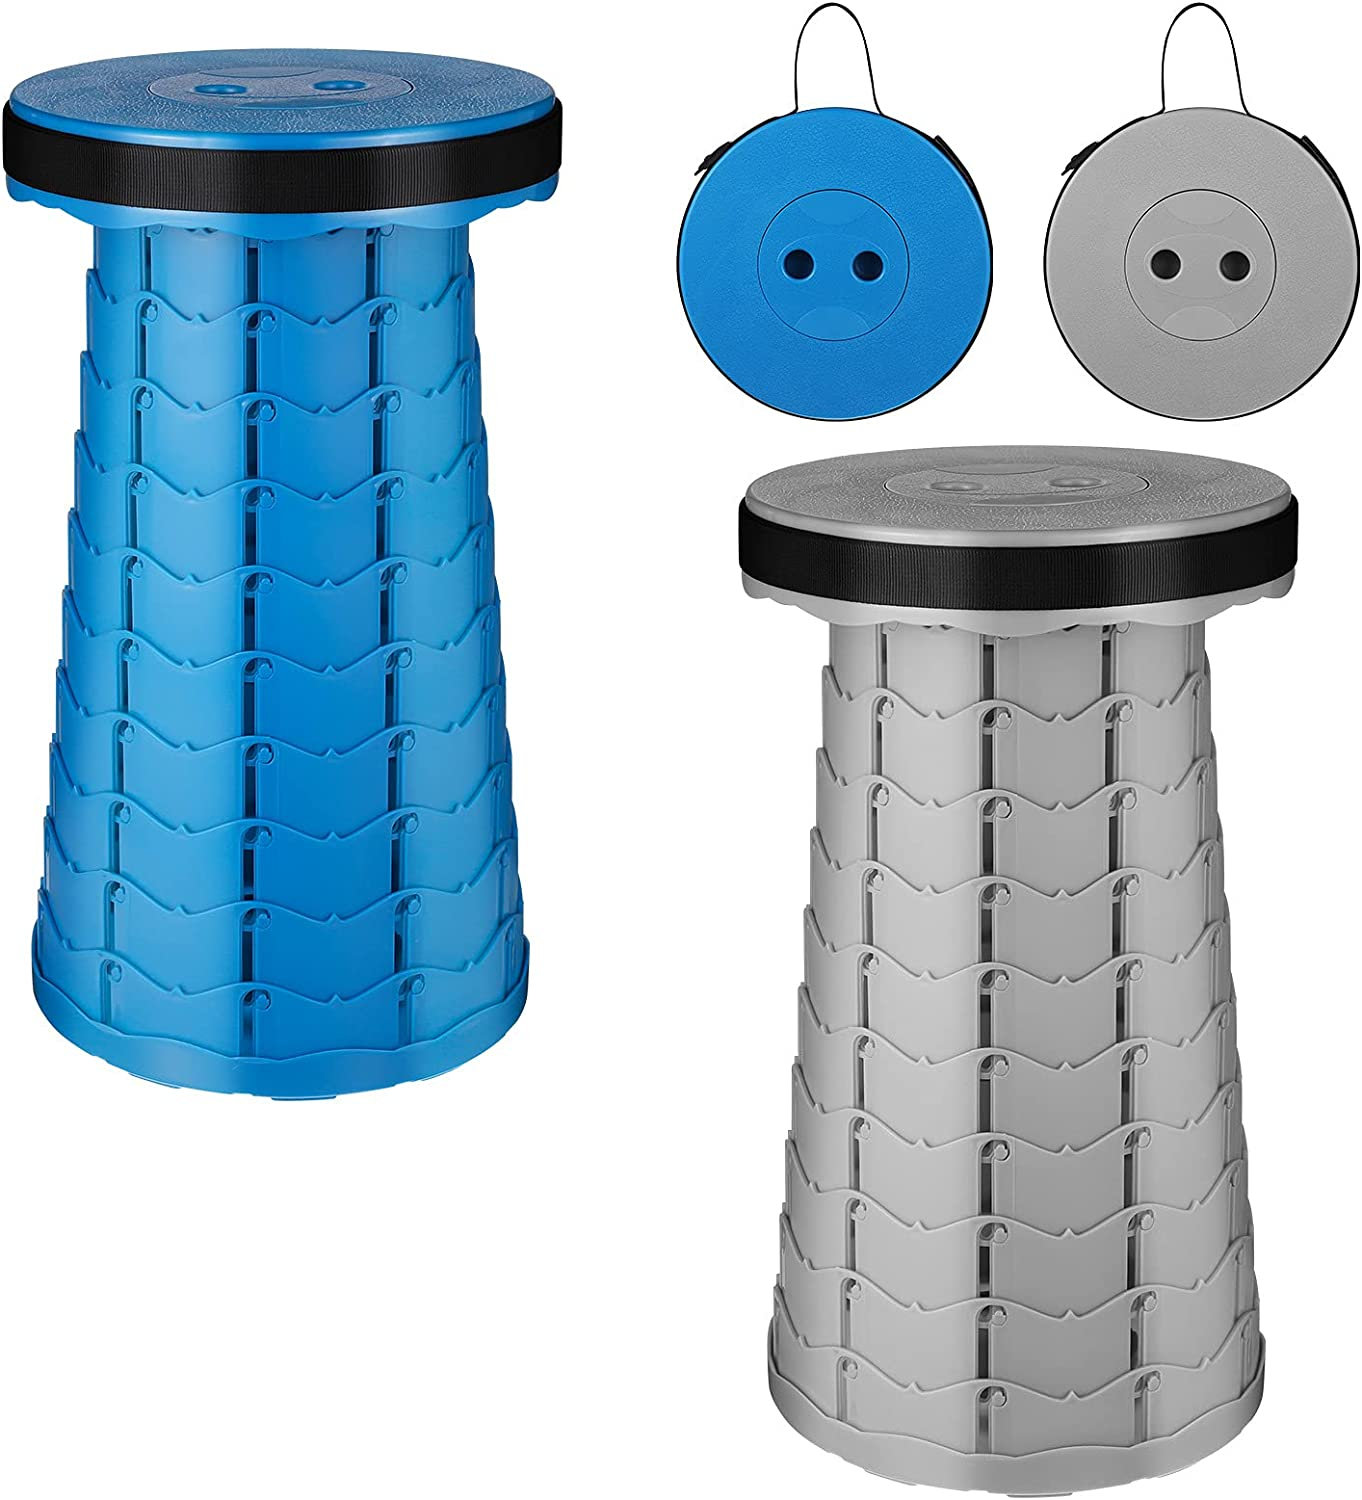 2 Pack Portable Folding Stool Set, Collapsible & Retractable Chair for Adults, Telescopic Fordable Furniture for Camping Fishing Hunting Hiking BBQ Outdoor and Indoor Activities ( Blue&Grey) by BOWINR